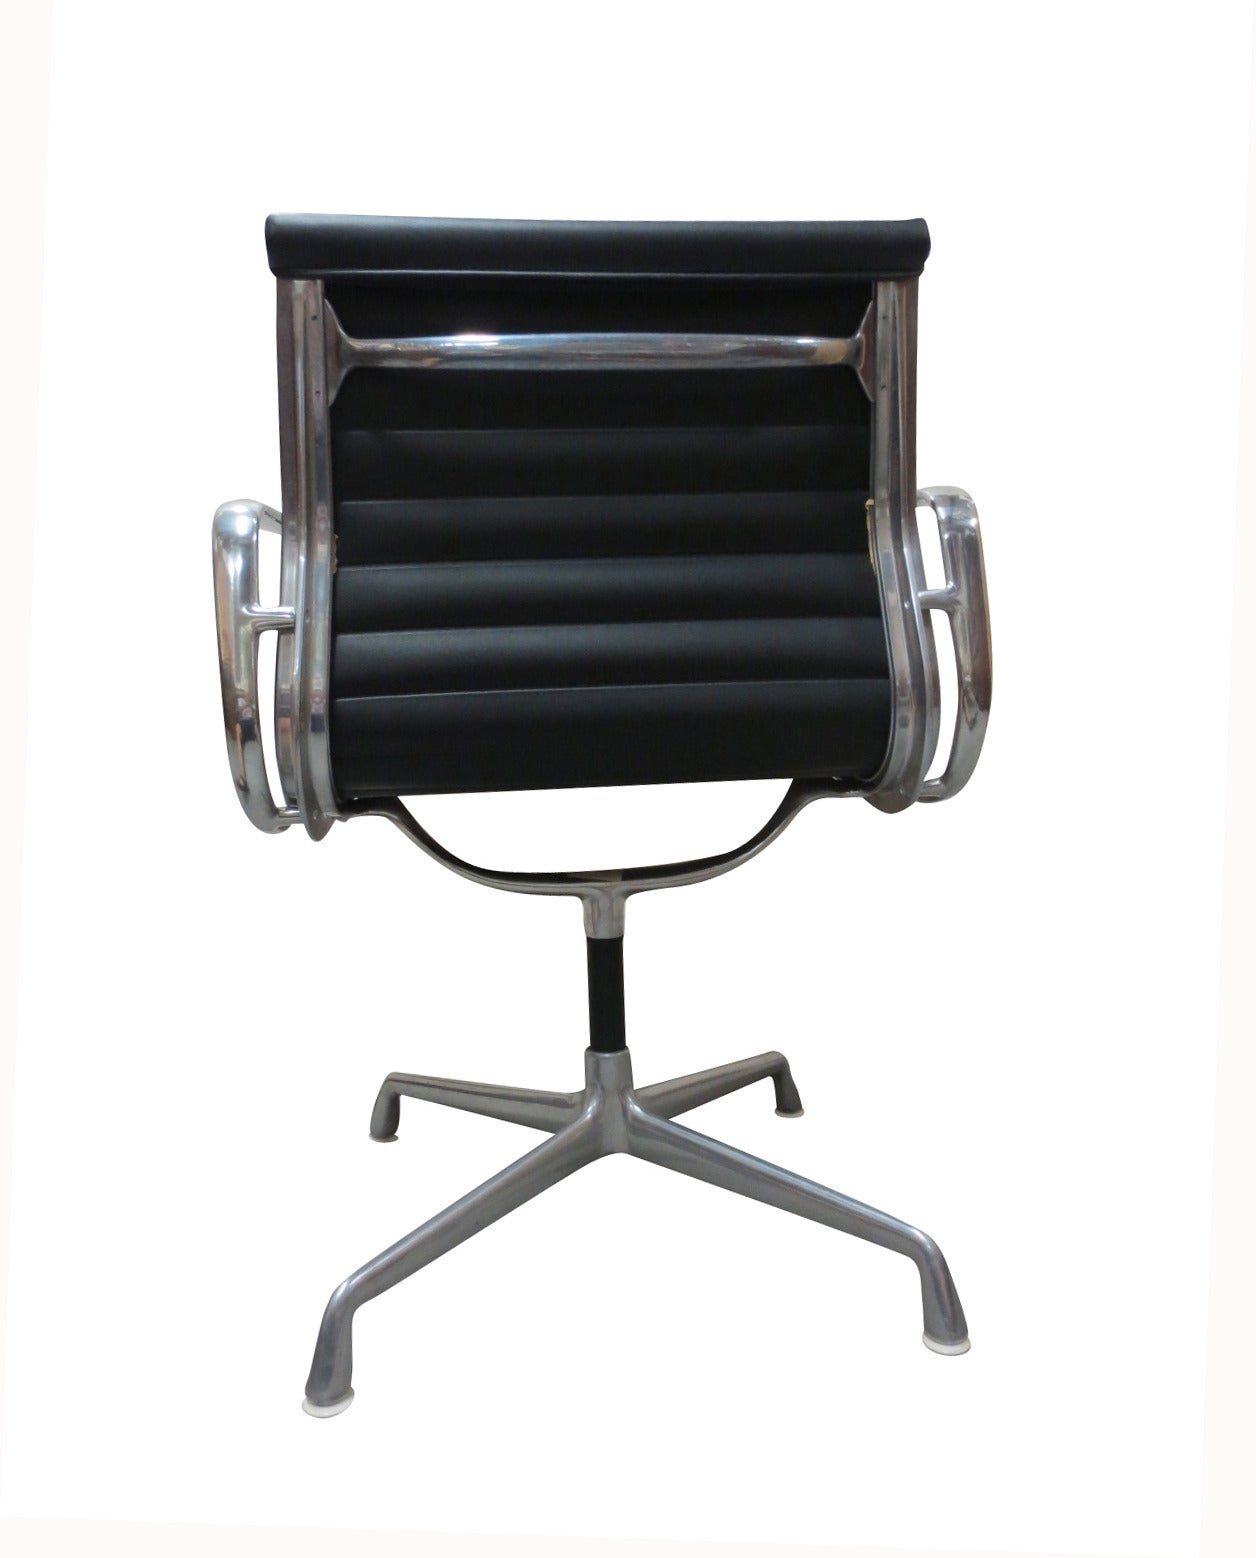 Herman Miller Office Chair Image 3